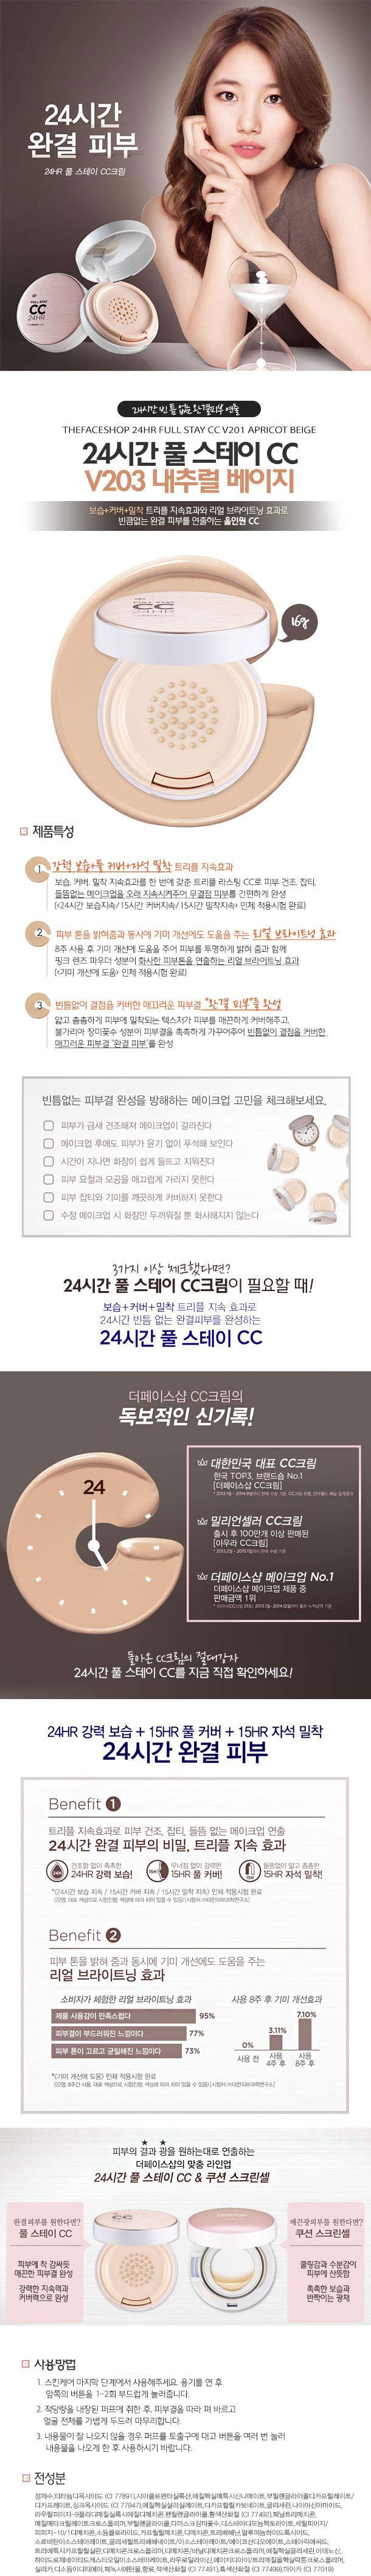 cc 24hr the face shop